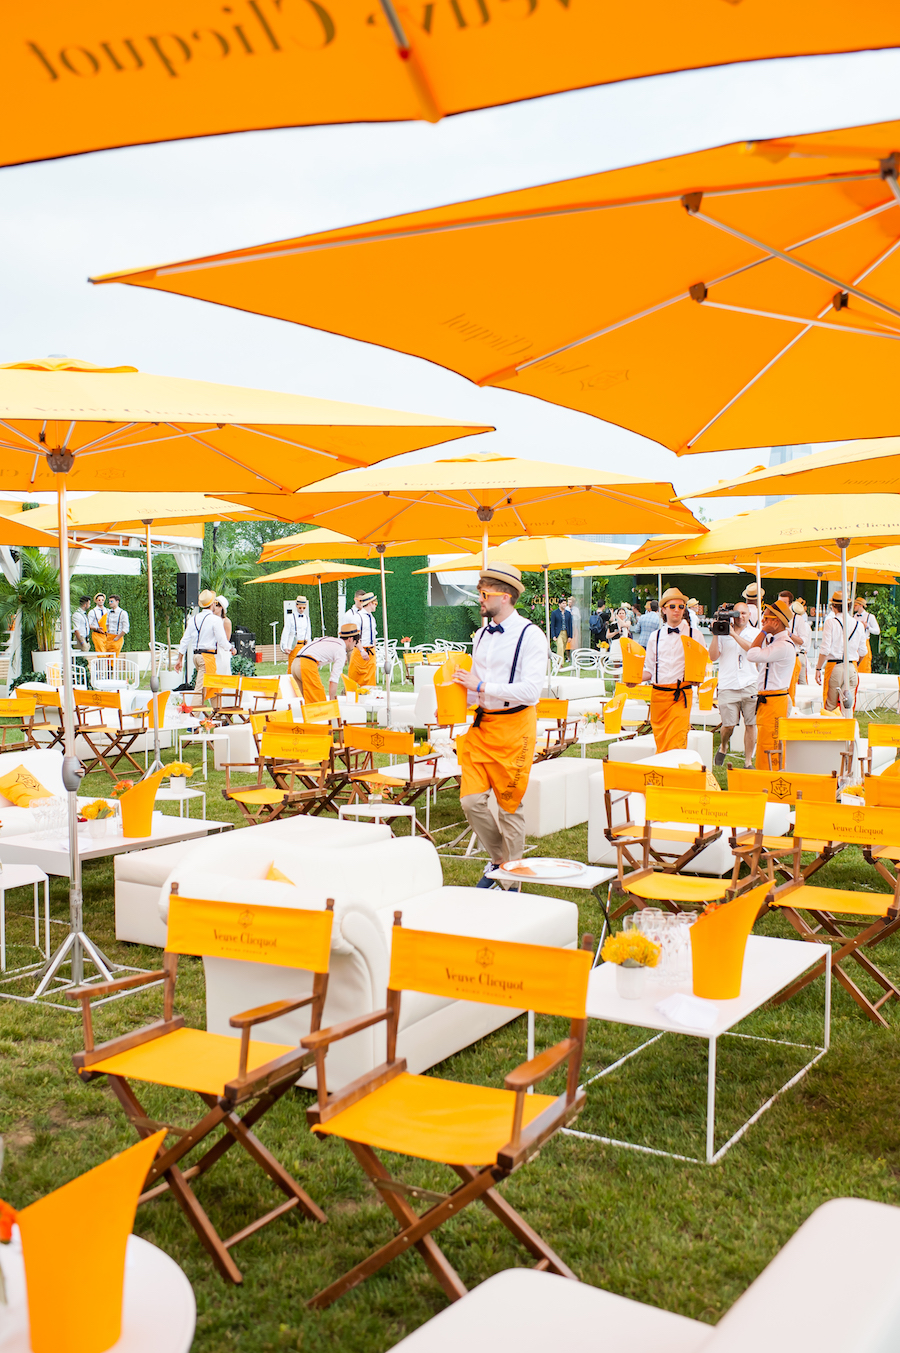 73 Veuve-Polo-Liberty-Island-Edgars-picks